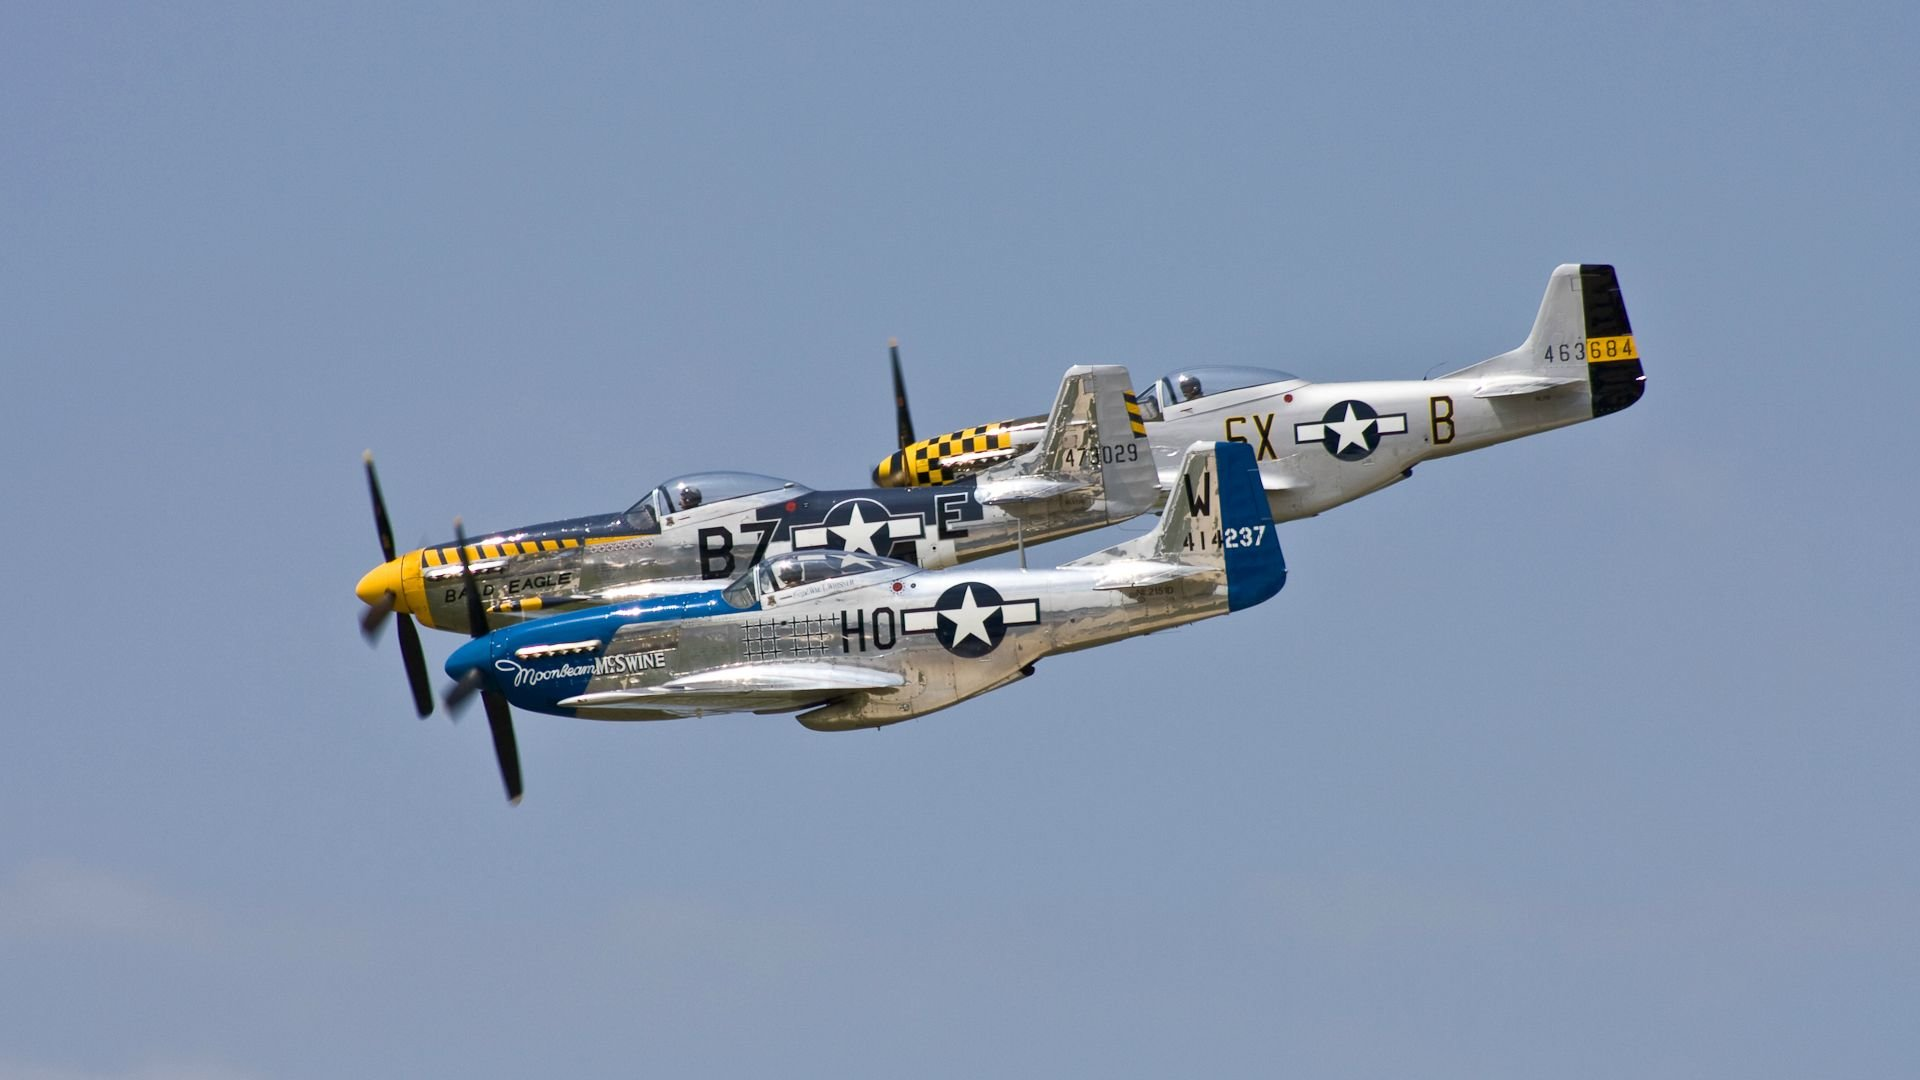 North American P 51 Mustang Wallpapers Hd For Desktop Backgrounds